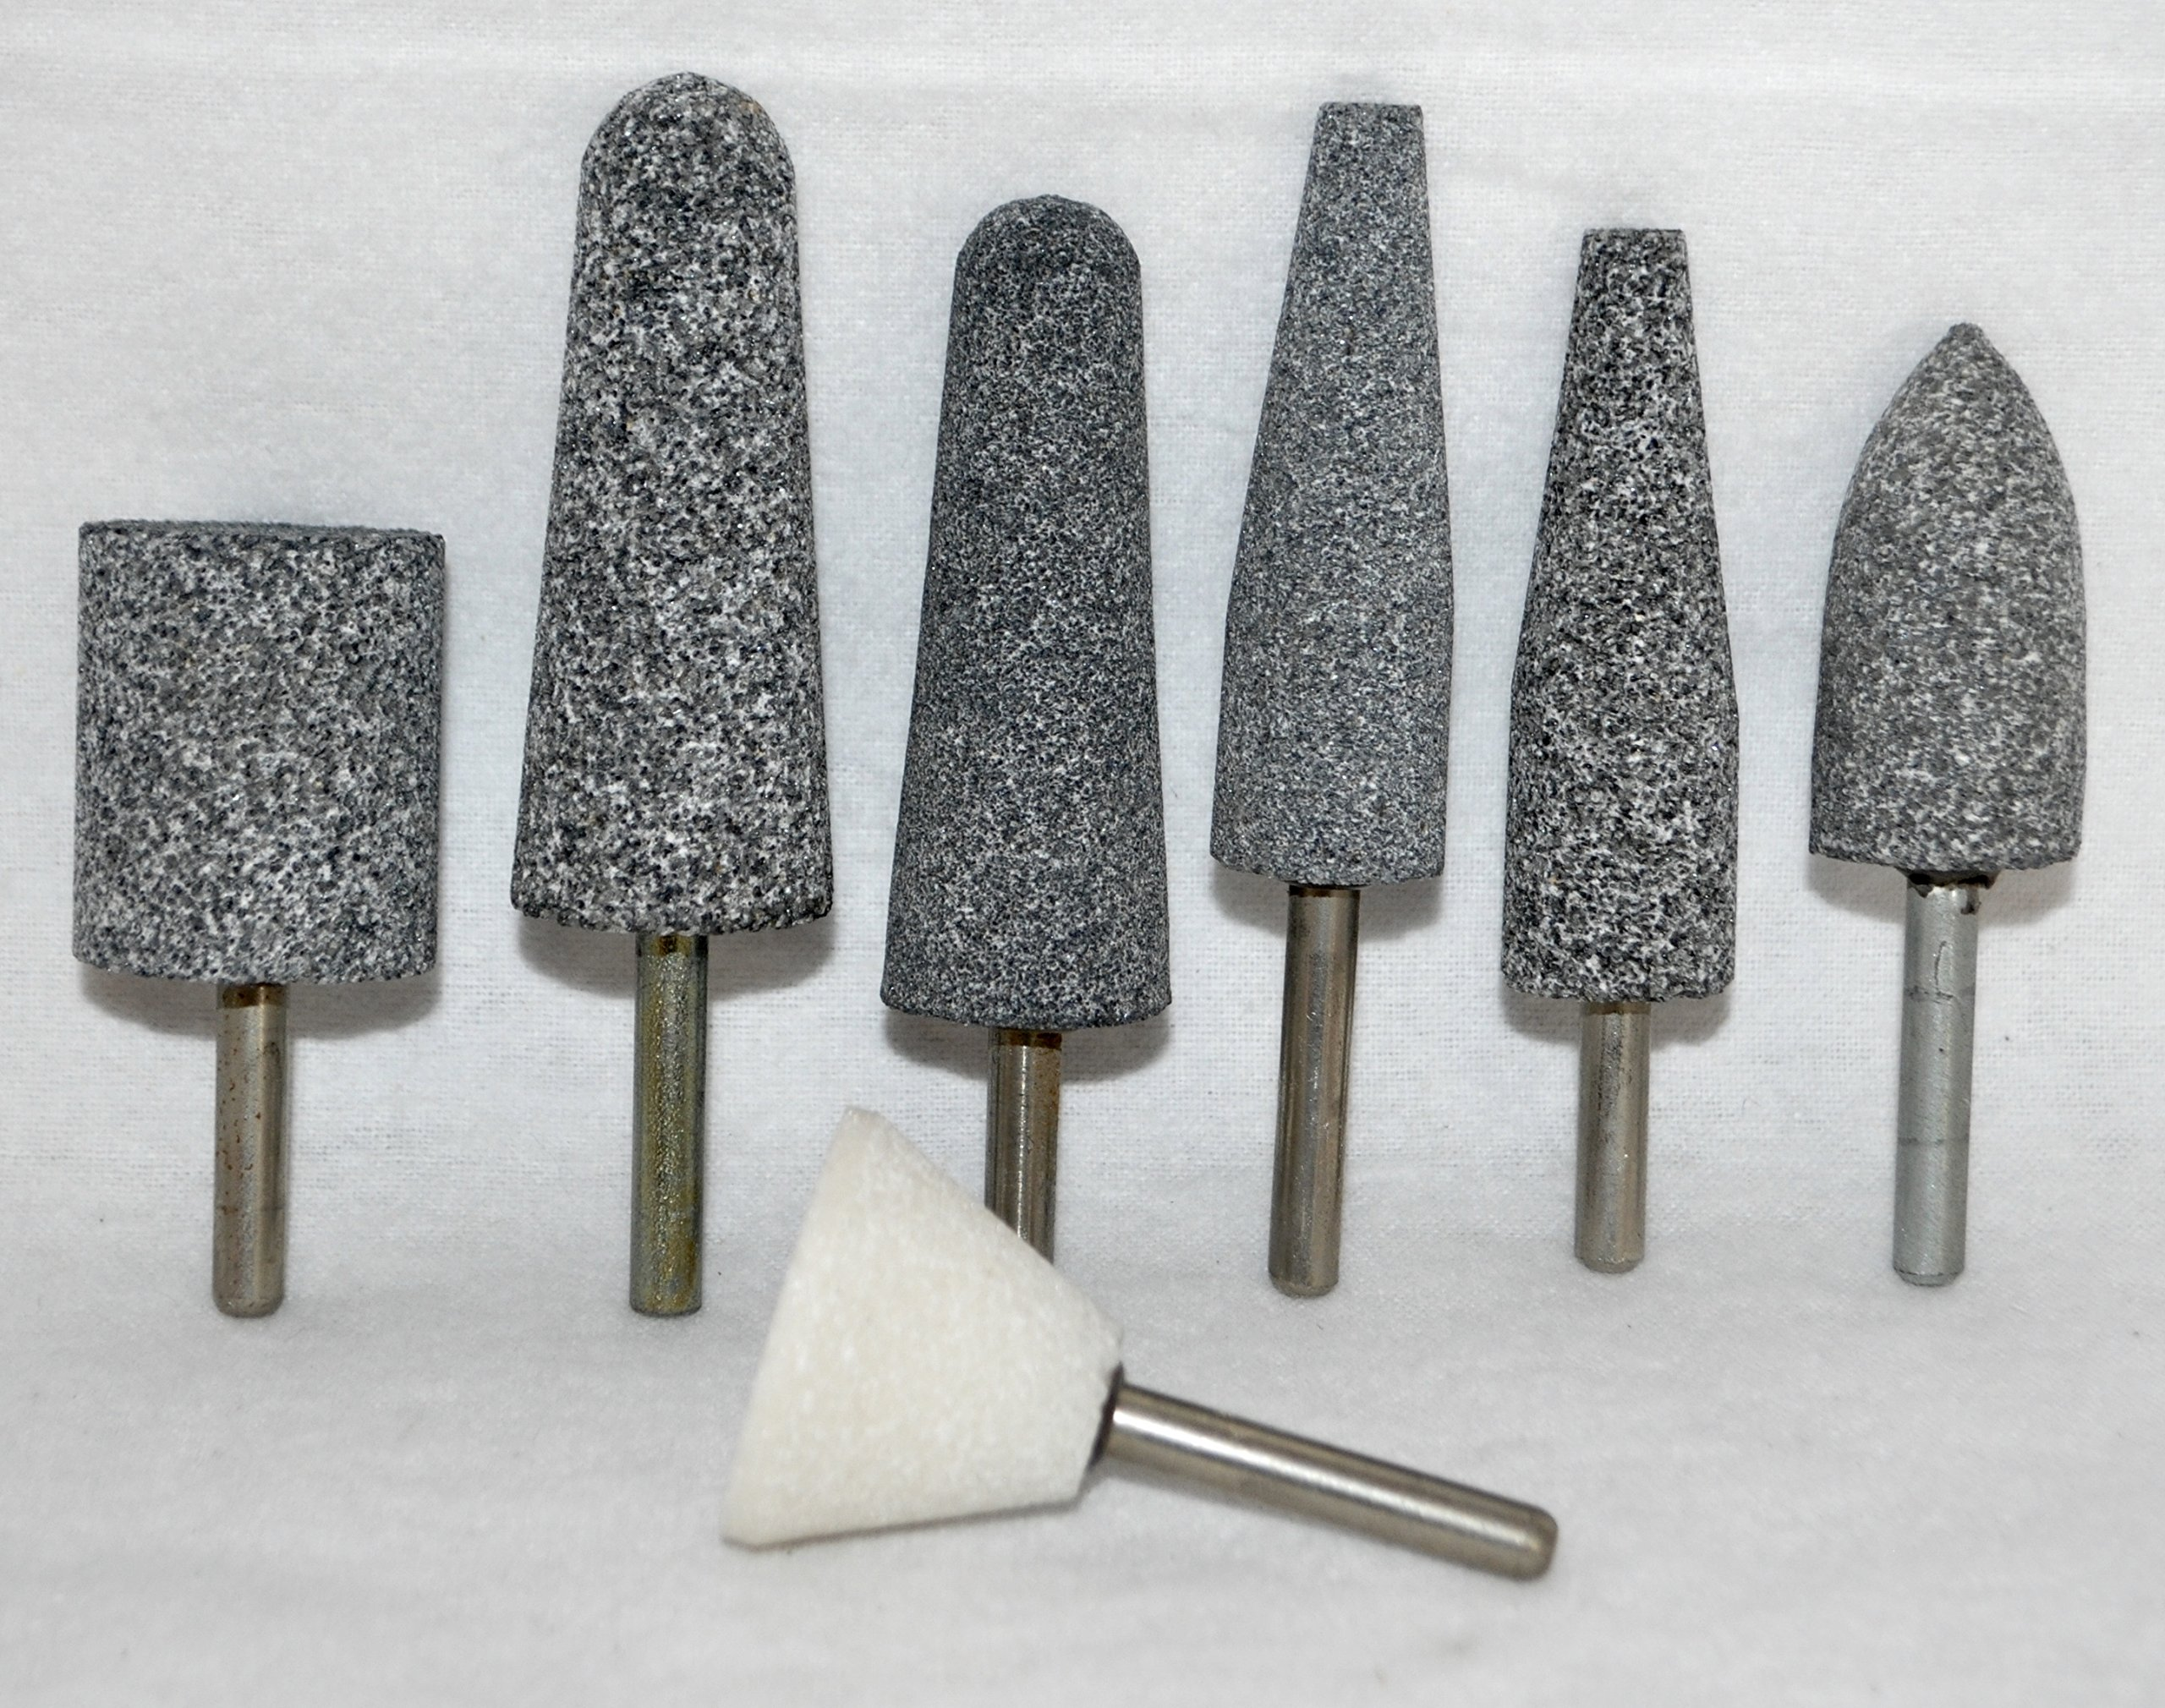 7 Pcs Set of Large 2 3/4'' Mounted Points - Abrasive Grinding Stone Bits with 1/4'' Shank